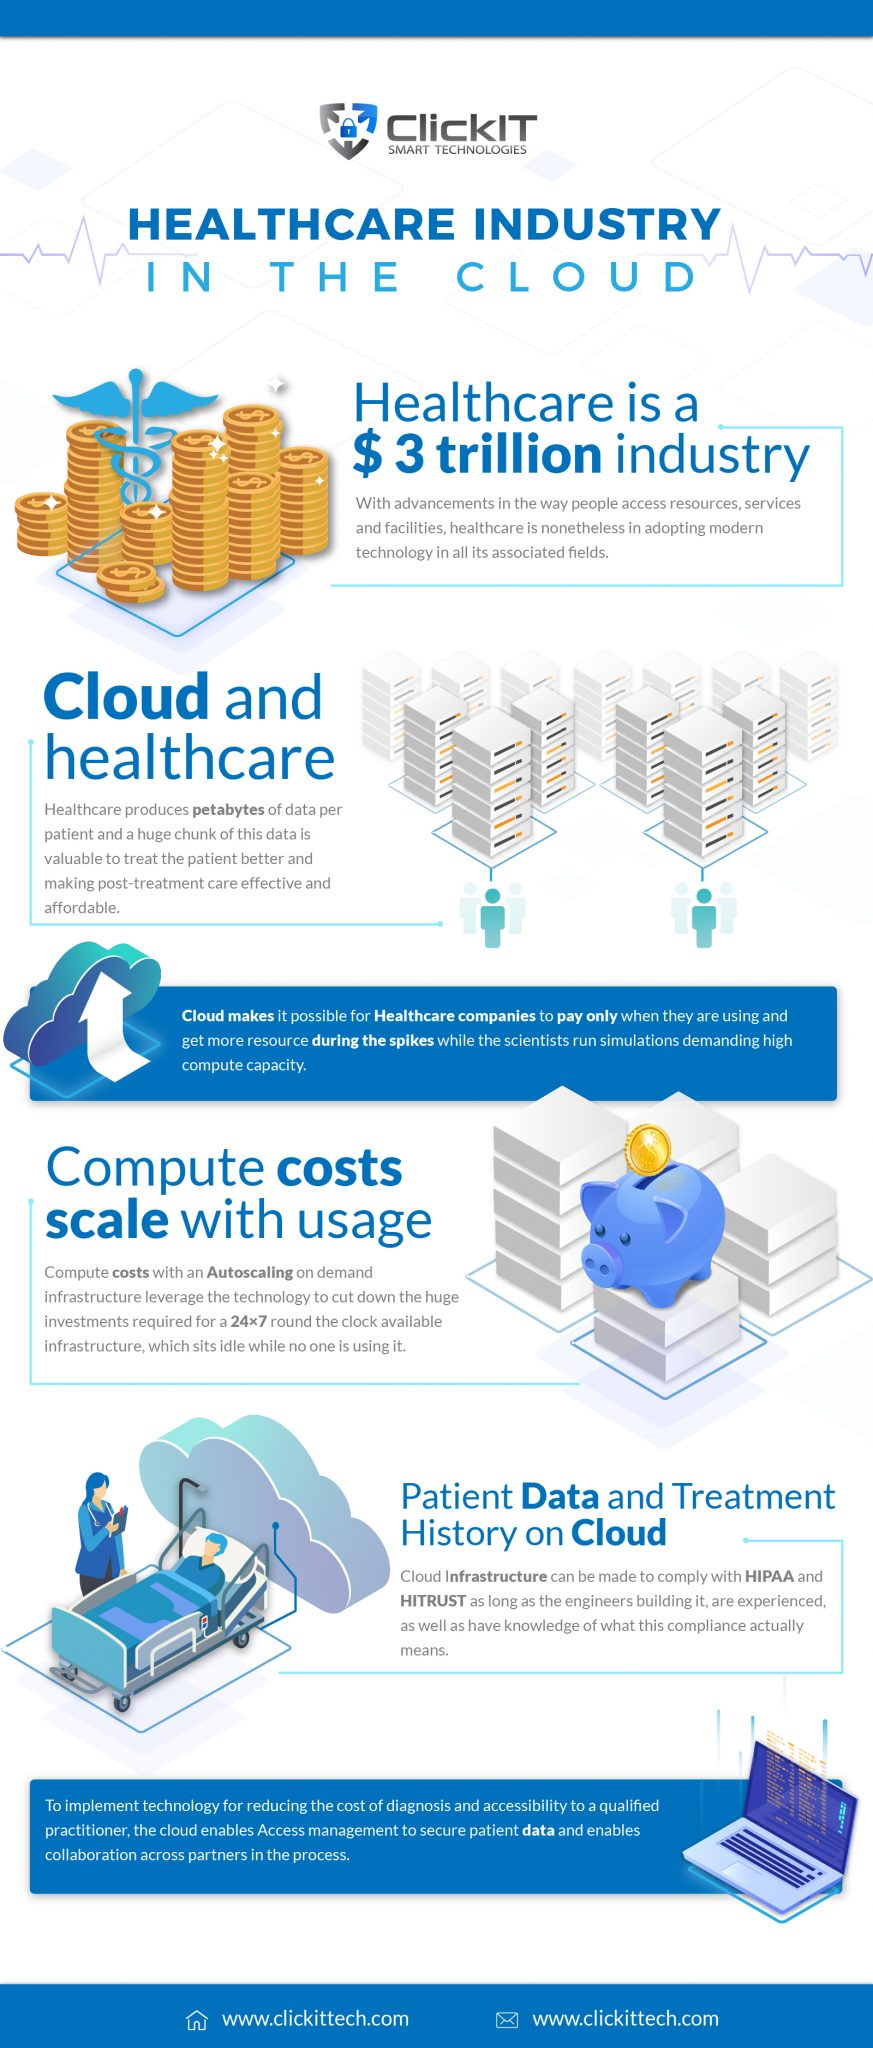 healthcare industry in the cloud